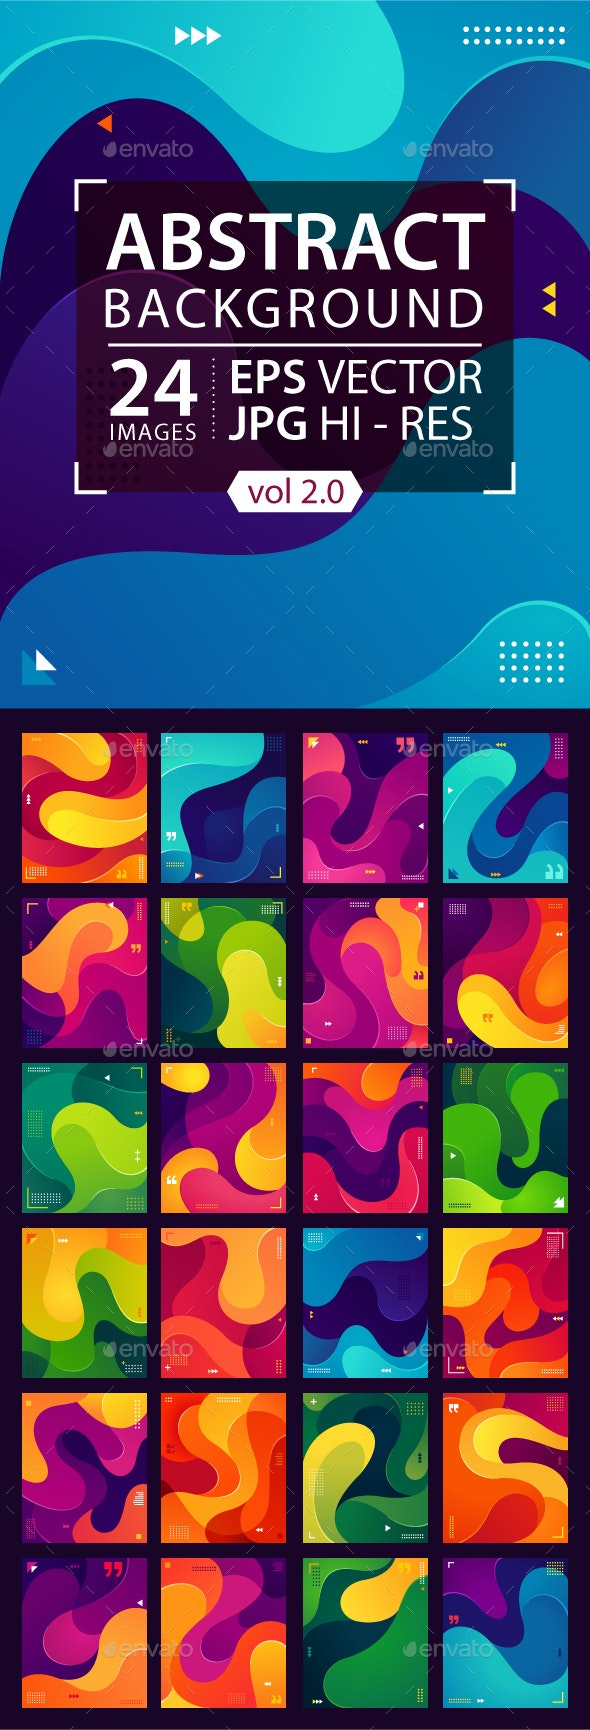 Colorful Fluid Background, Vector Graphic Element (Vol. 2) - Abstract Backgrounds